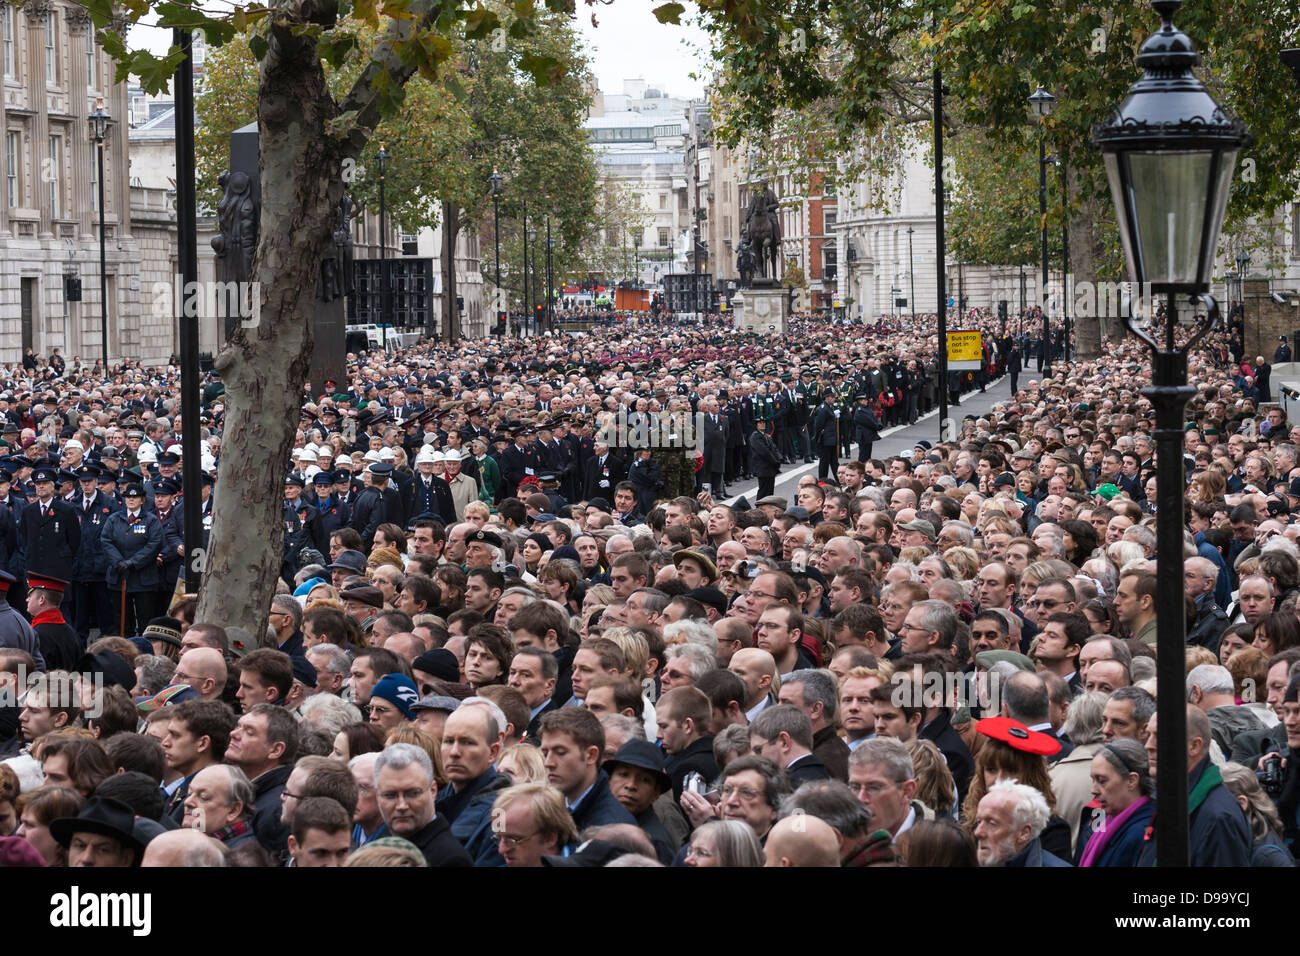 Large crowd at the Cenotaph in Whitehall, London on Remembrance Sunday with a woman wearing a distinctive red poppy - Stock Image